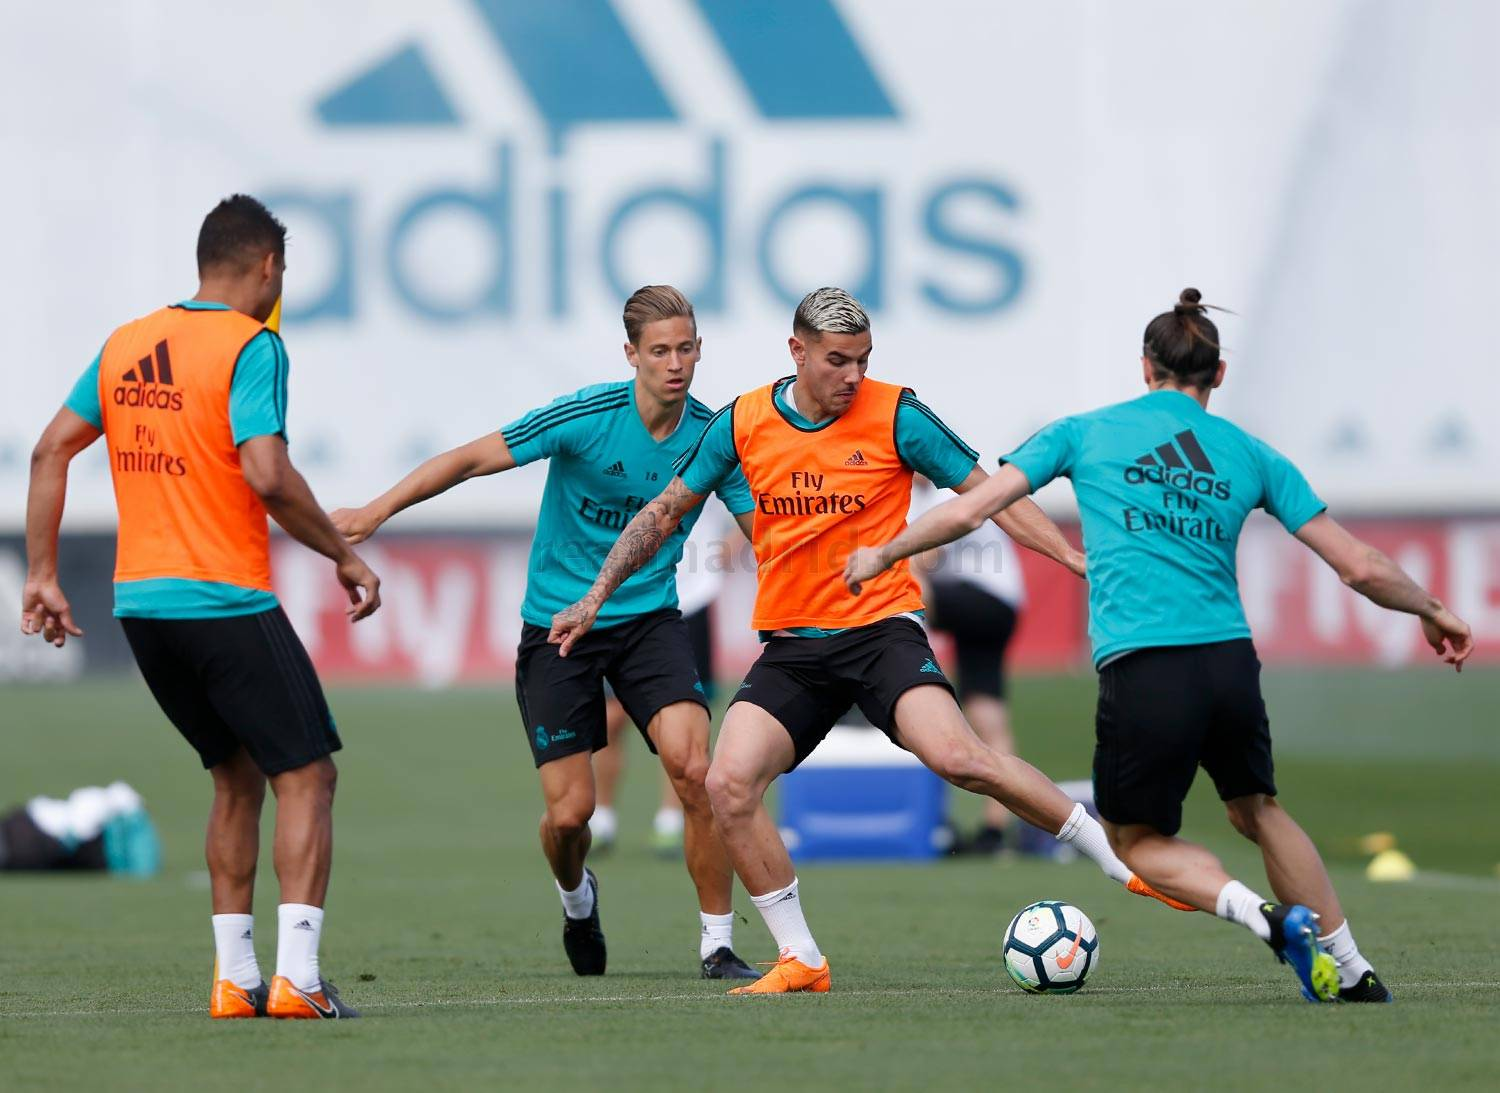 Real Madrid - Entrenamiento del Real Madrid - 17-05-2018